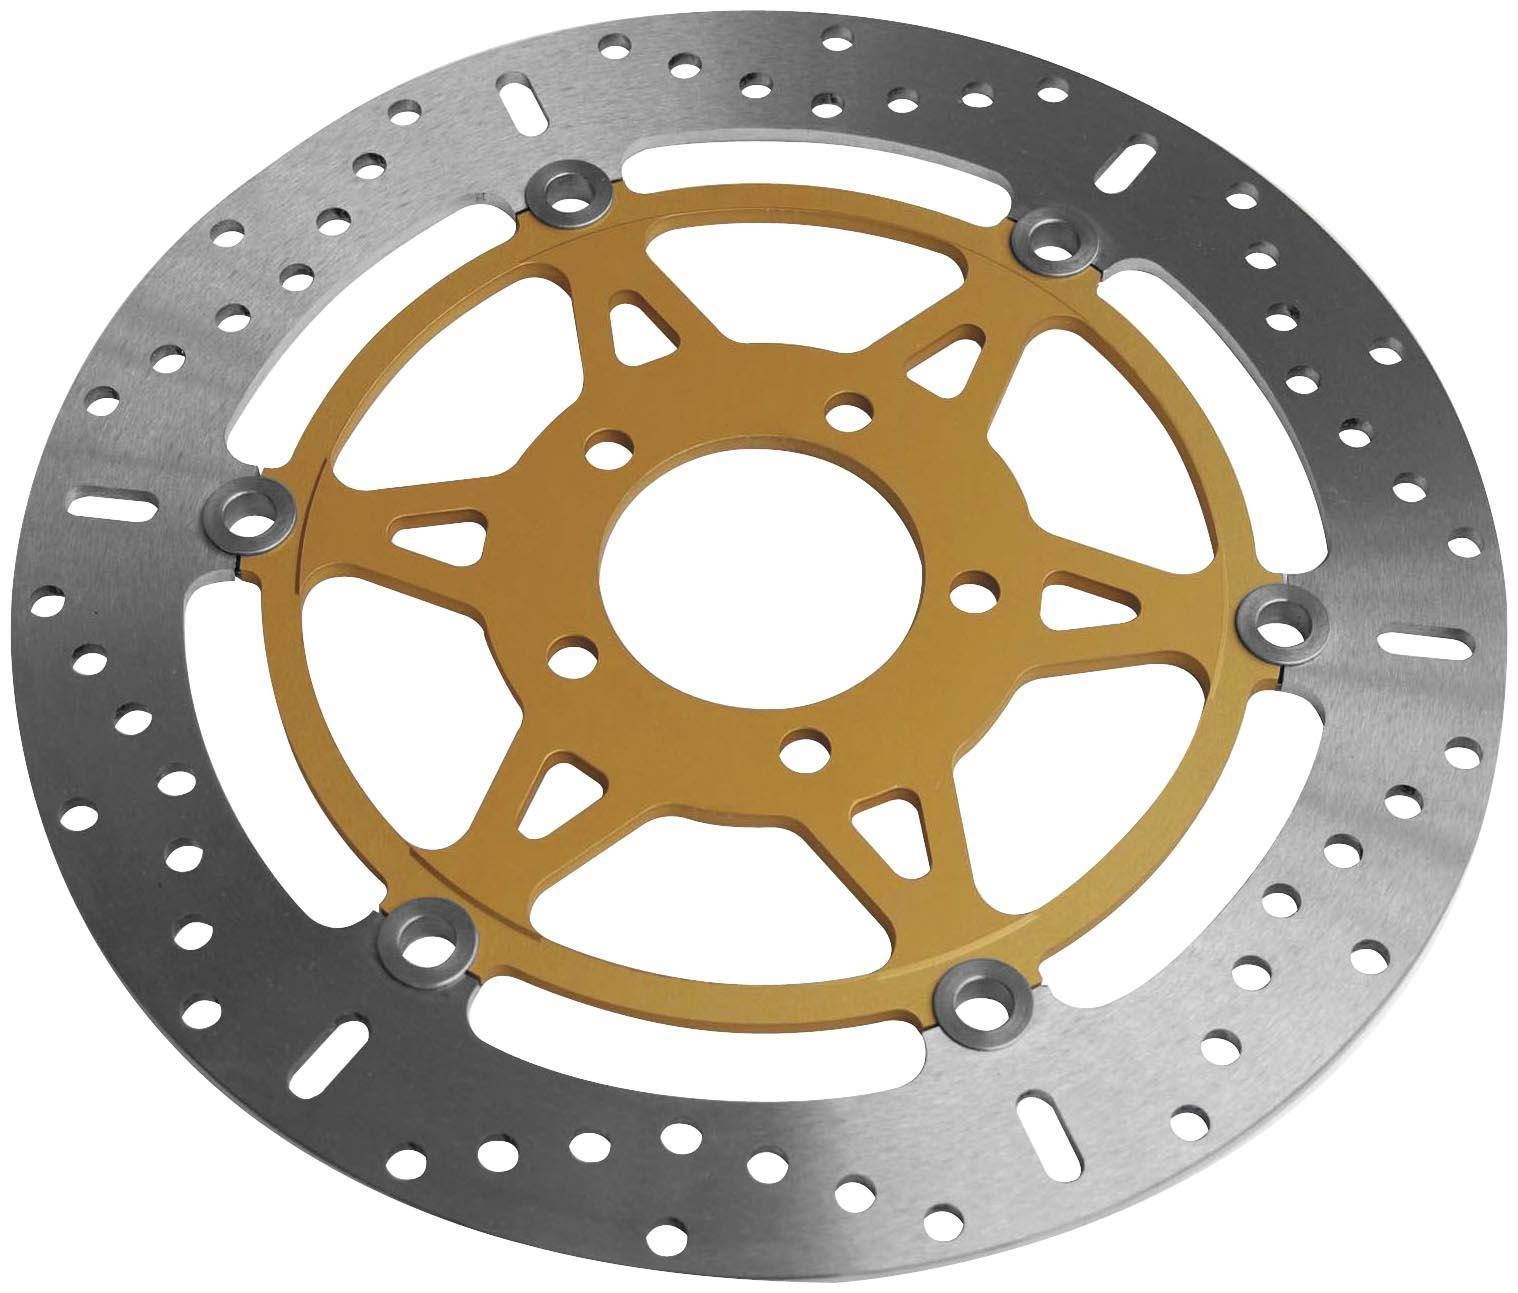 Oe Replacement Brake Rotor For Sale In Farmington Hills Mi Allied Xs750e Yamaha Motorcycle Front Disc Caliper Diagram And Parts Leisure Corp 800 521 6848